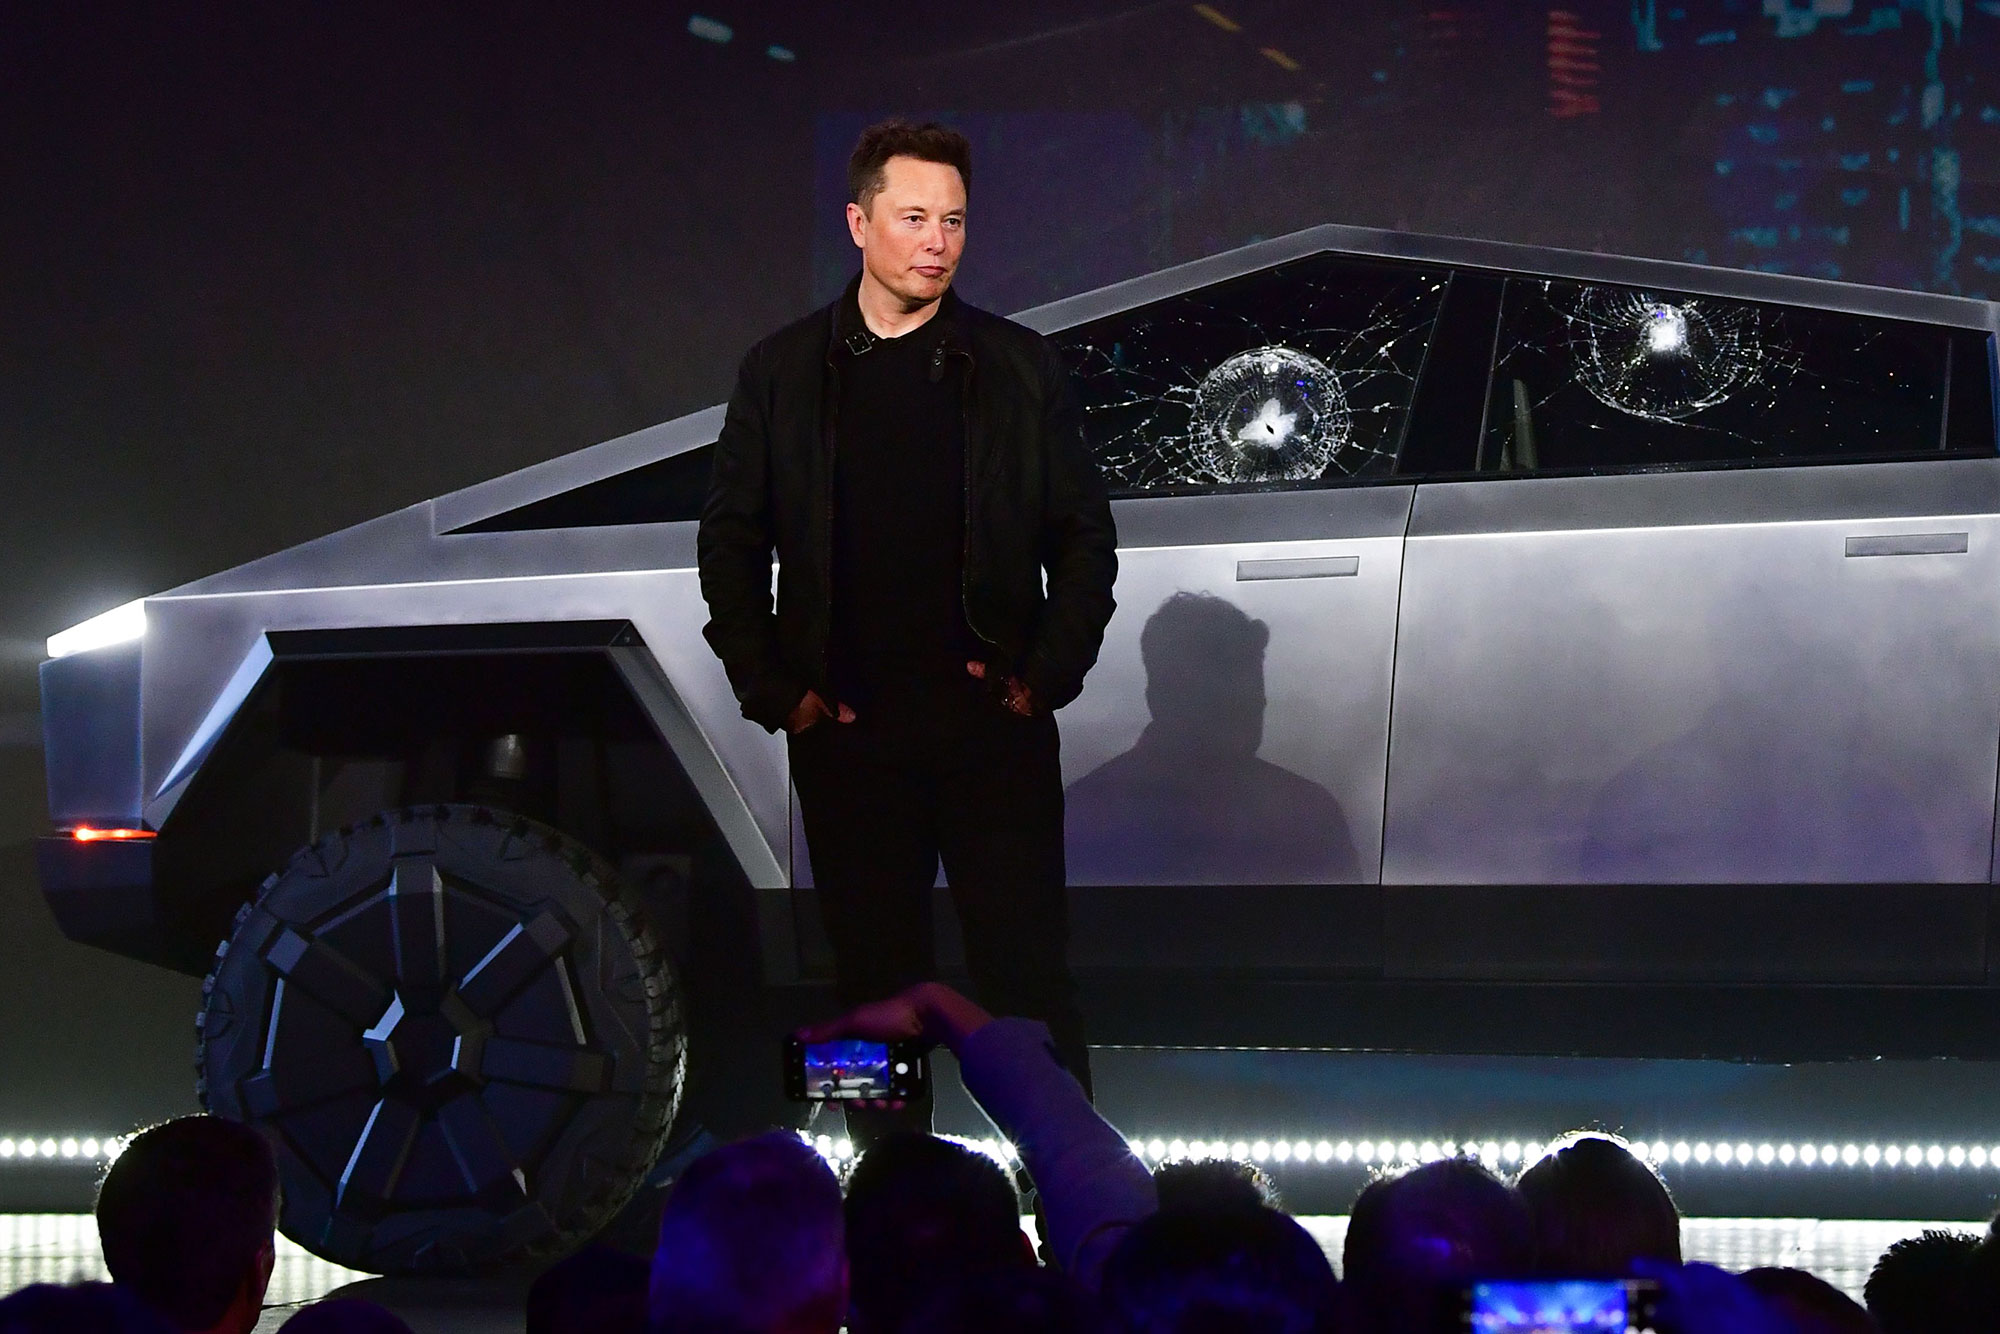 Elon Musk stands in front of the newly unveiled Tesla's Cybertruck at Tesla Design Center